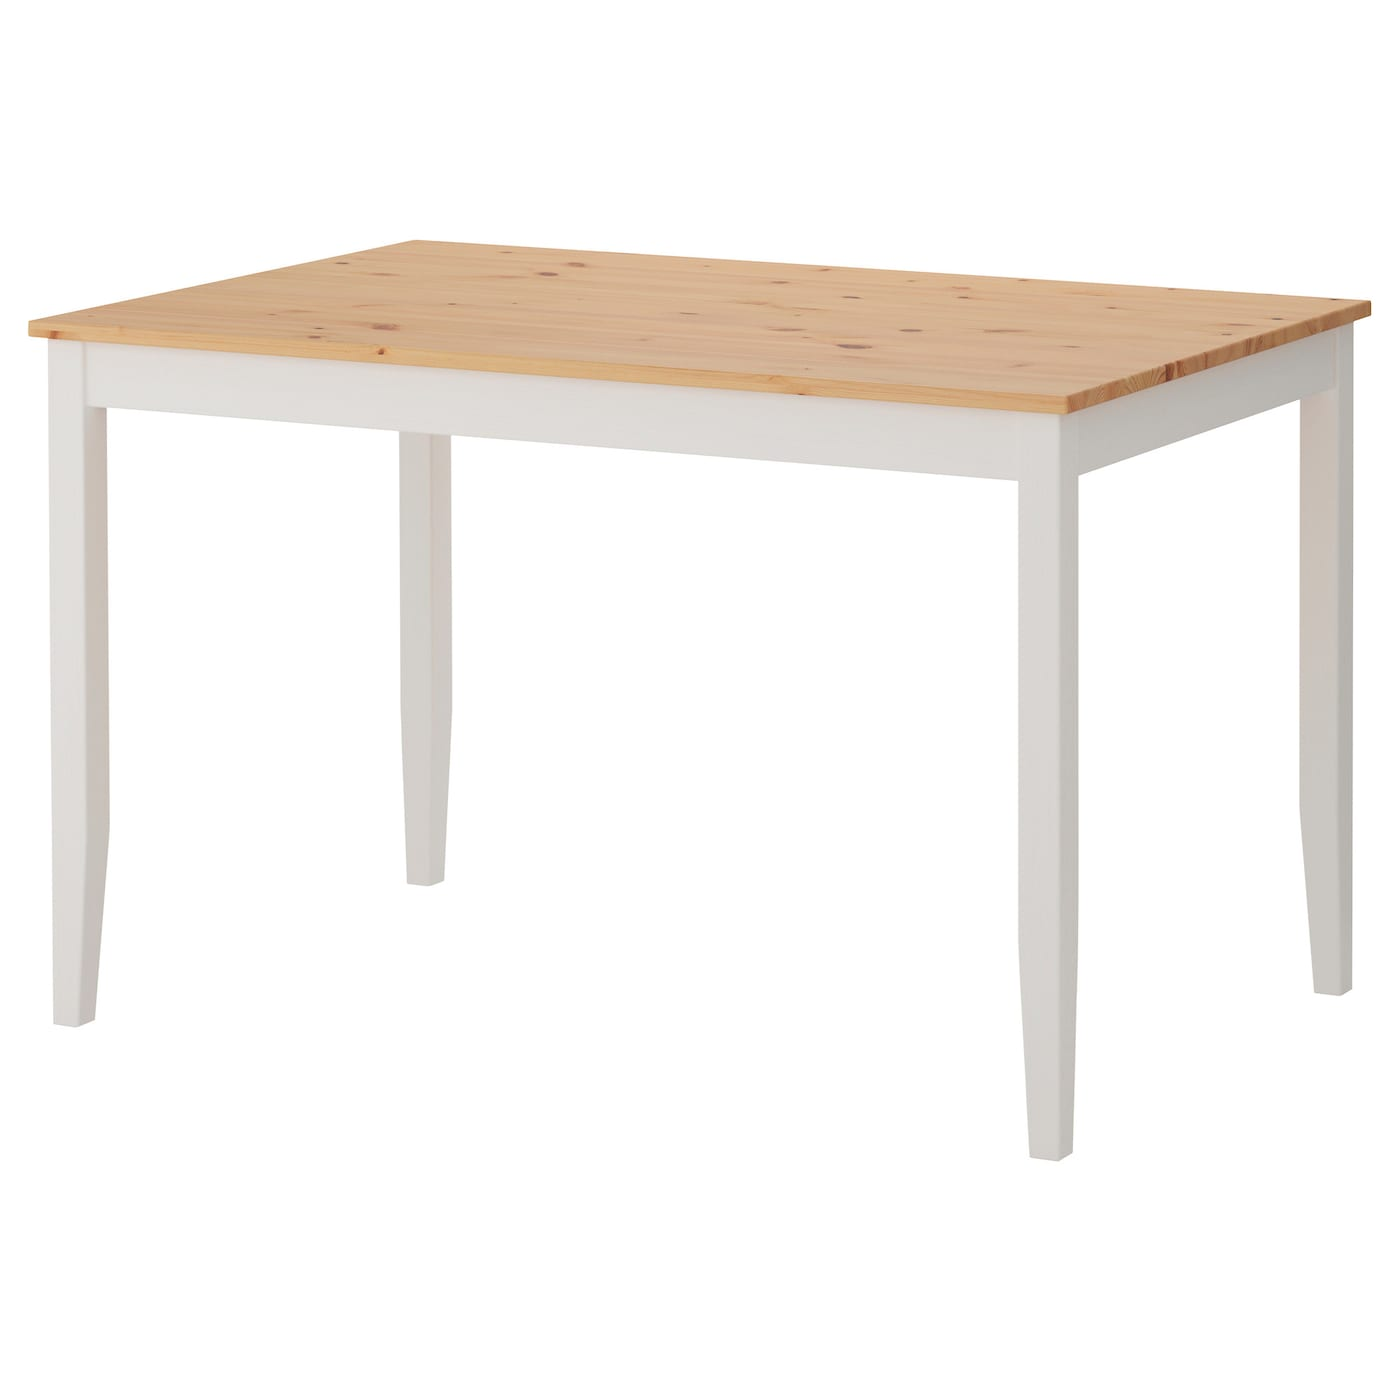 IKEA LERHAMN table